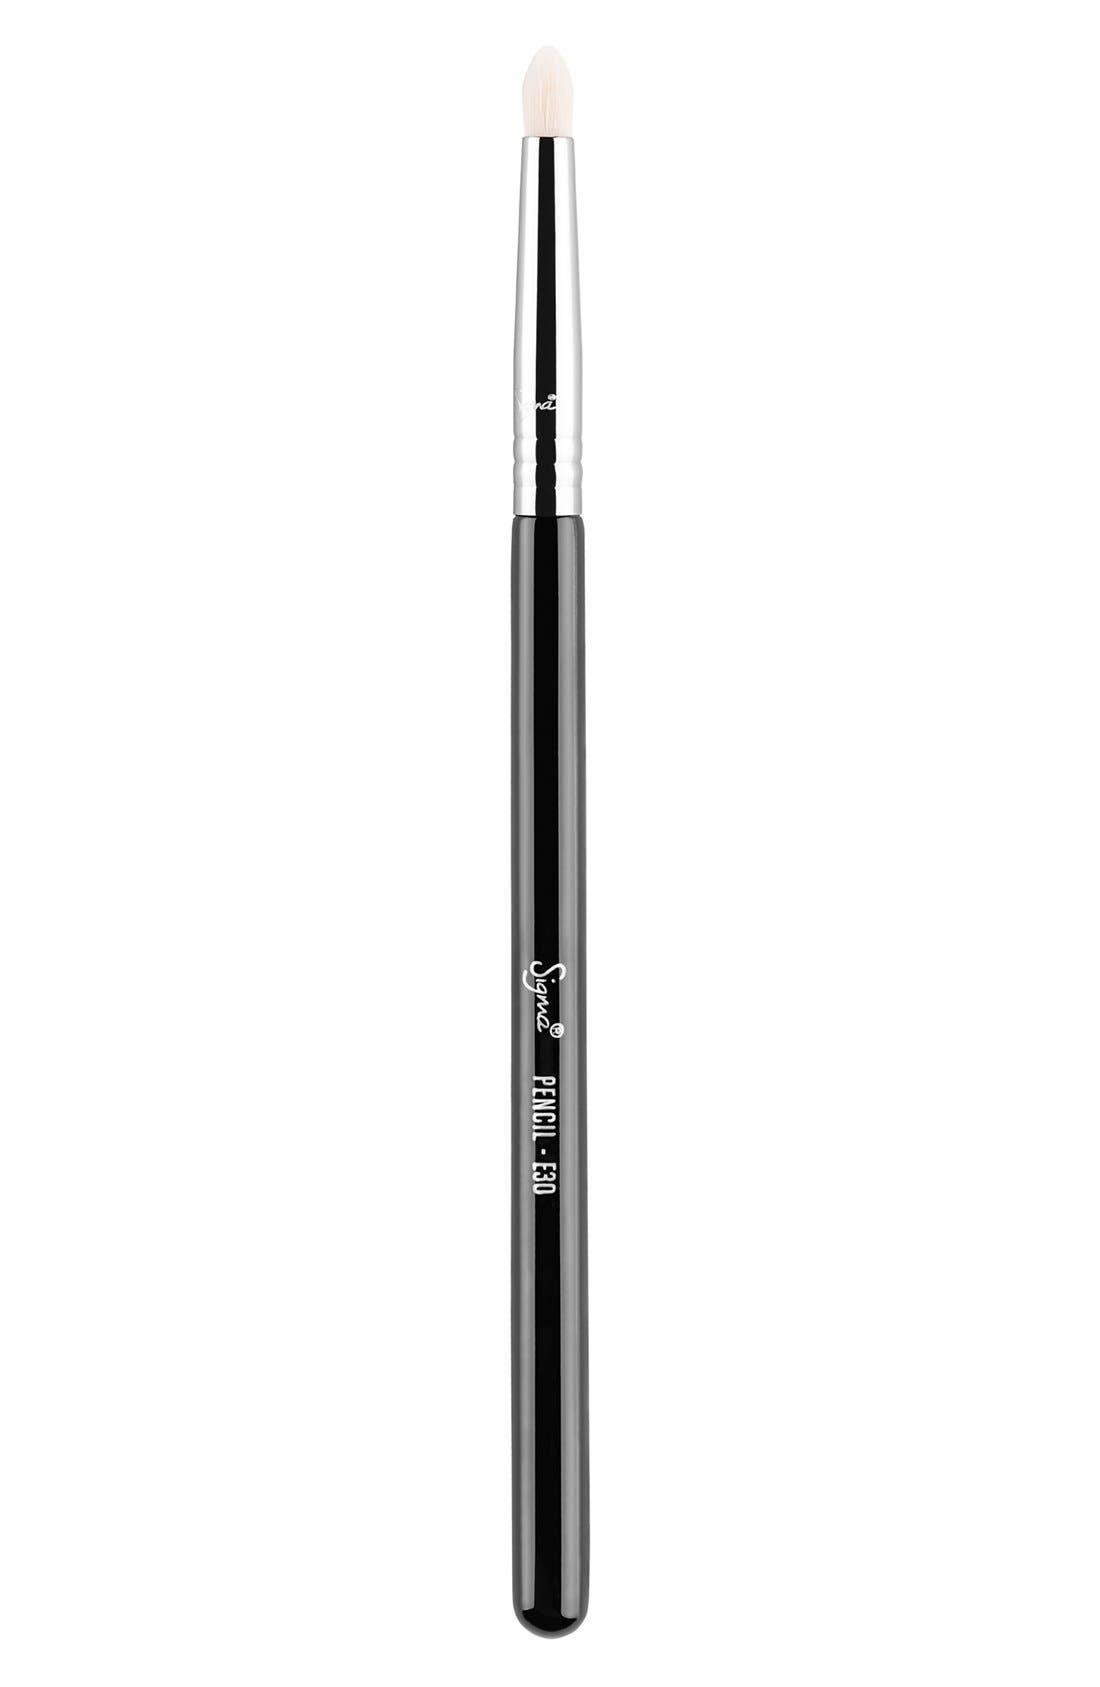 Sigma Beauty E30 Pencil Brush